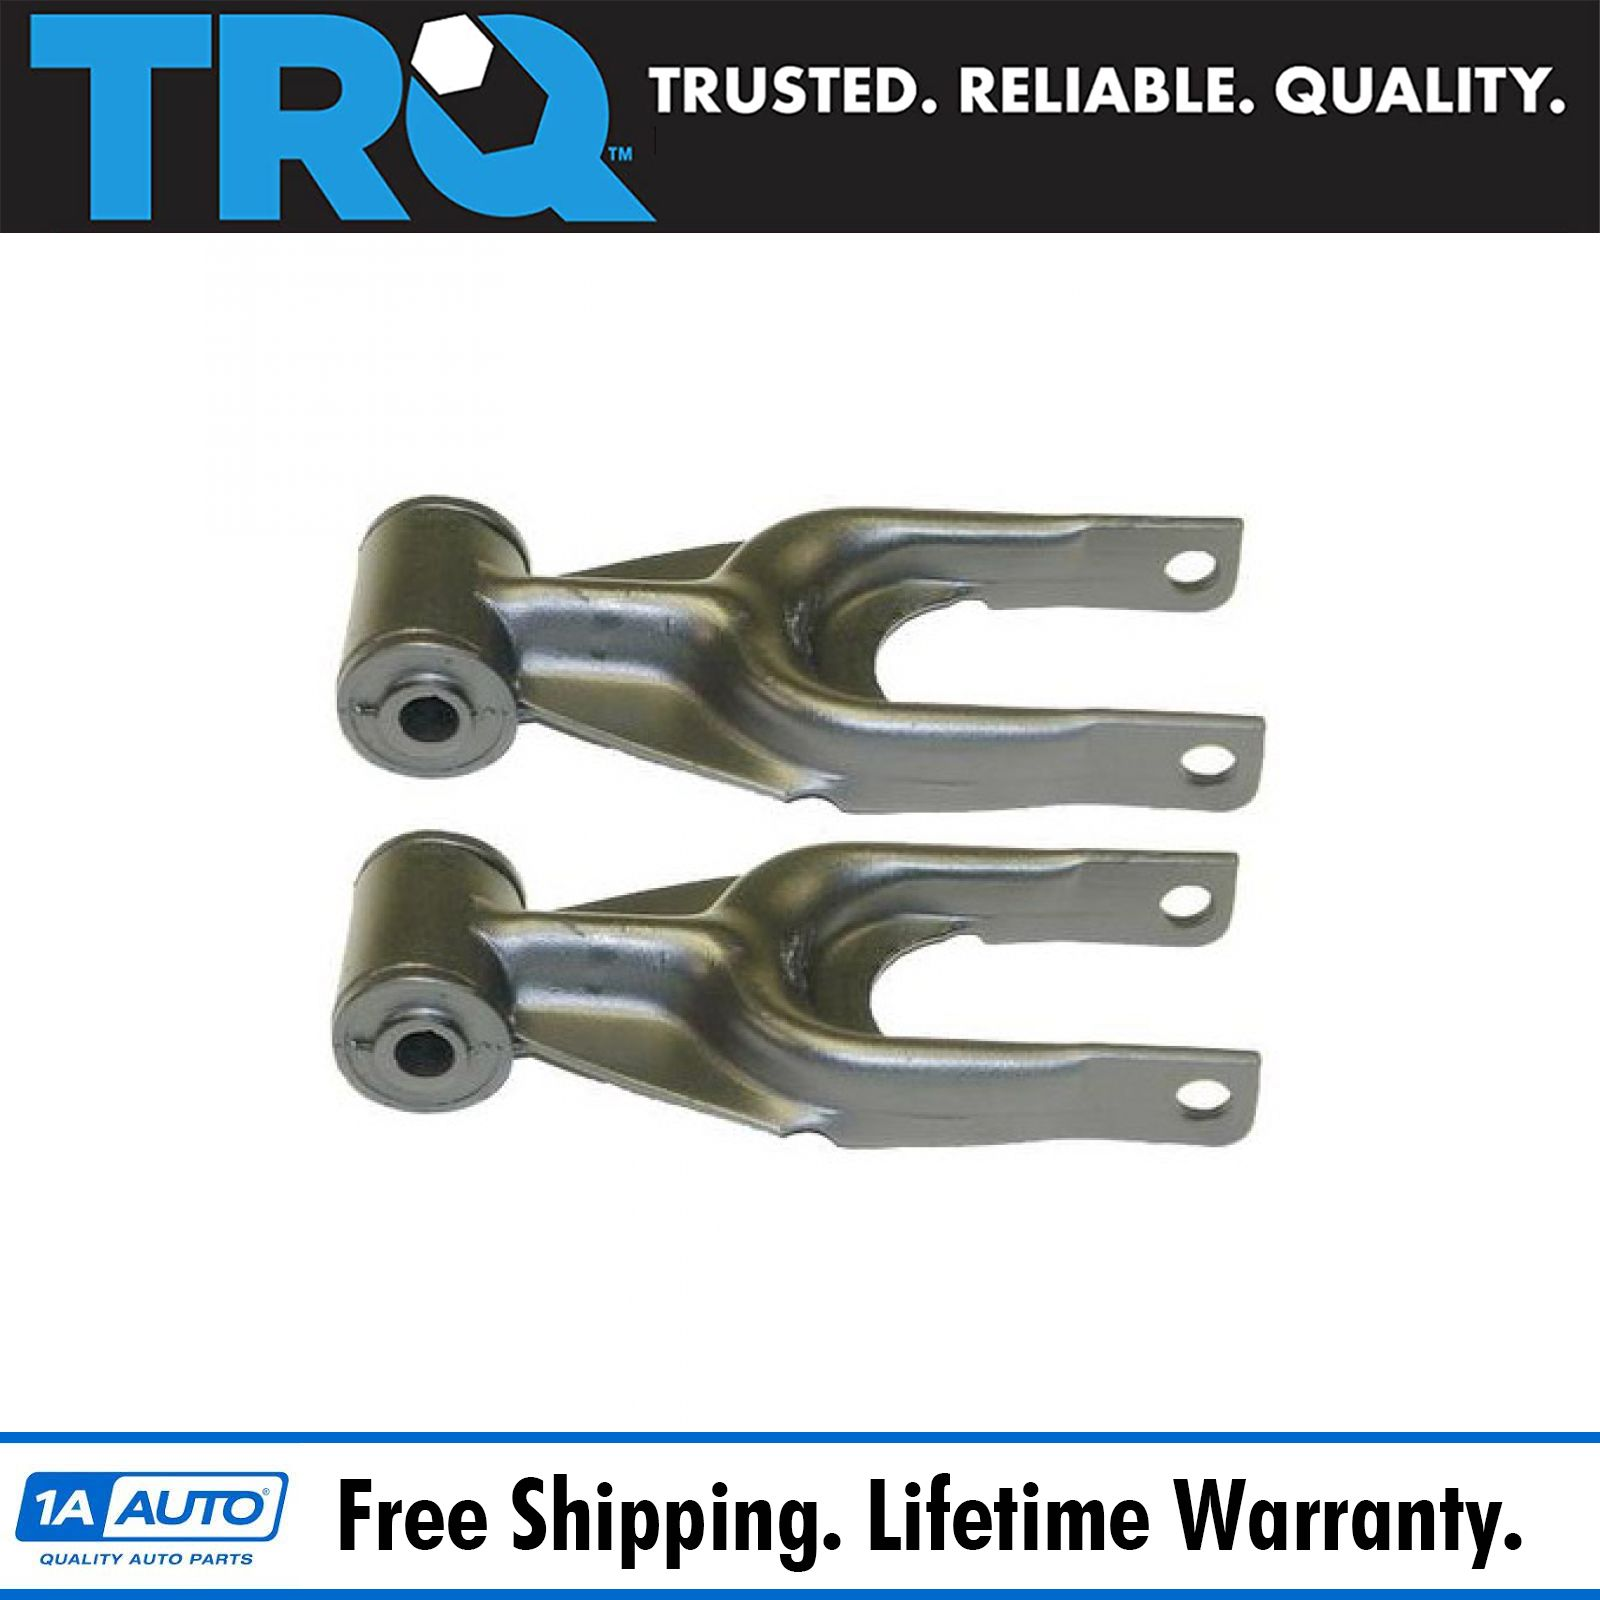 Engine Motor Mounts Torque Struts Front Pair Set for Chevy Buick Olds Pontiac